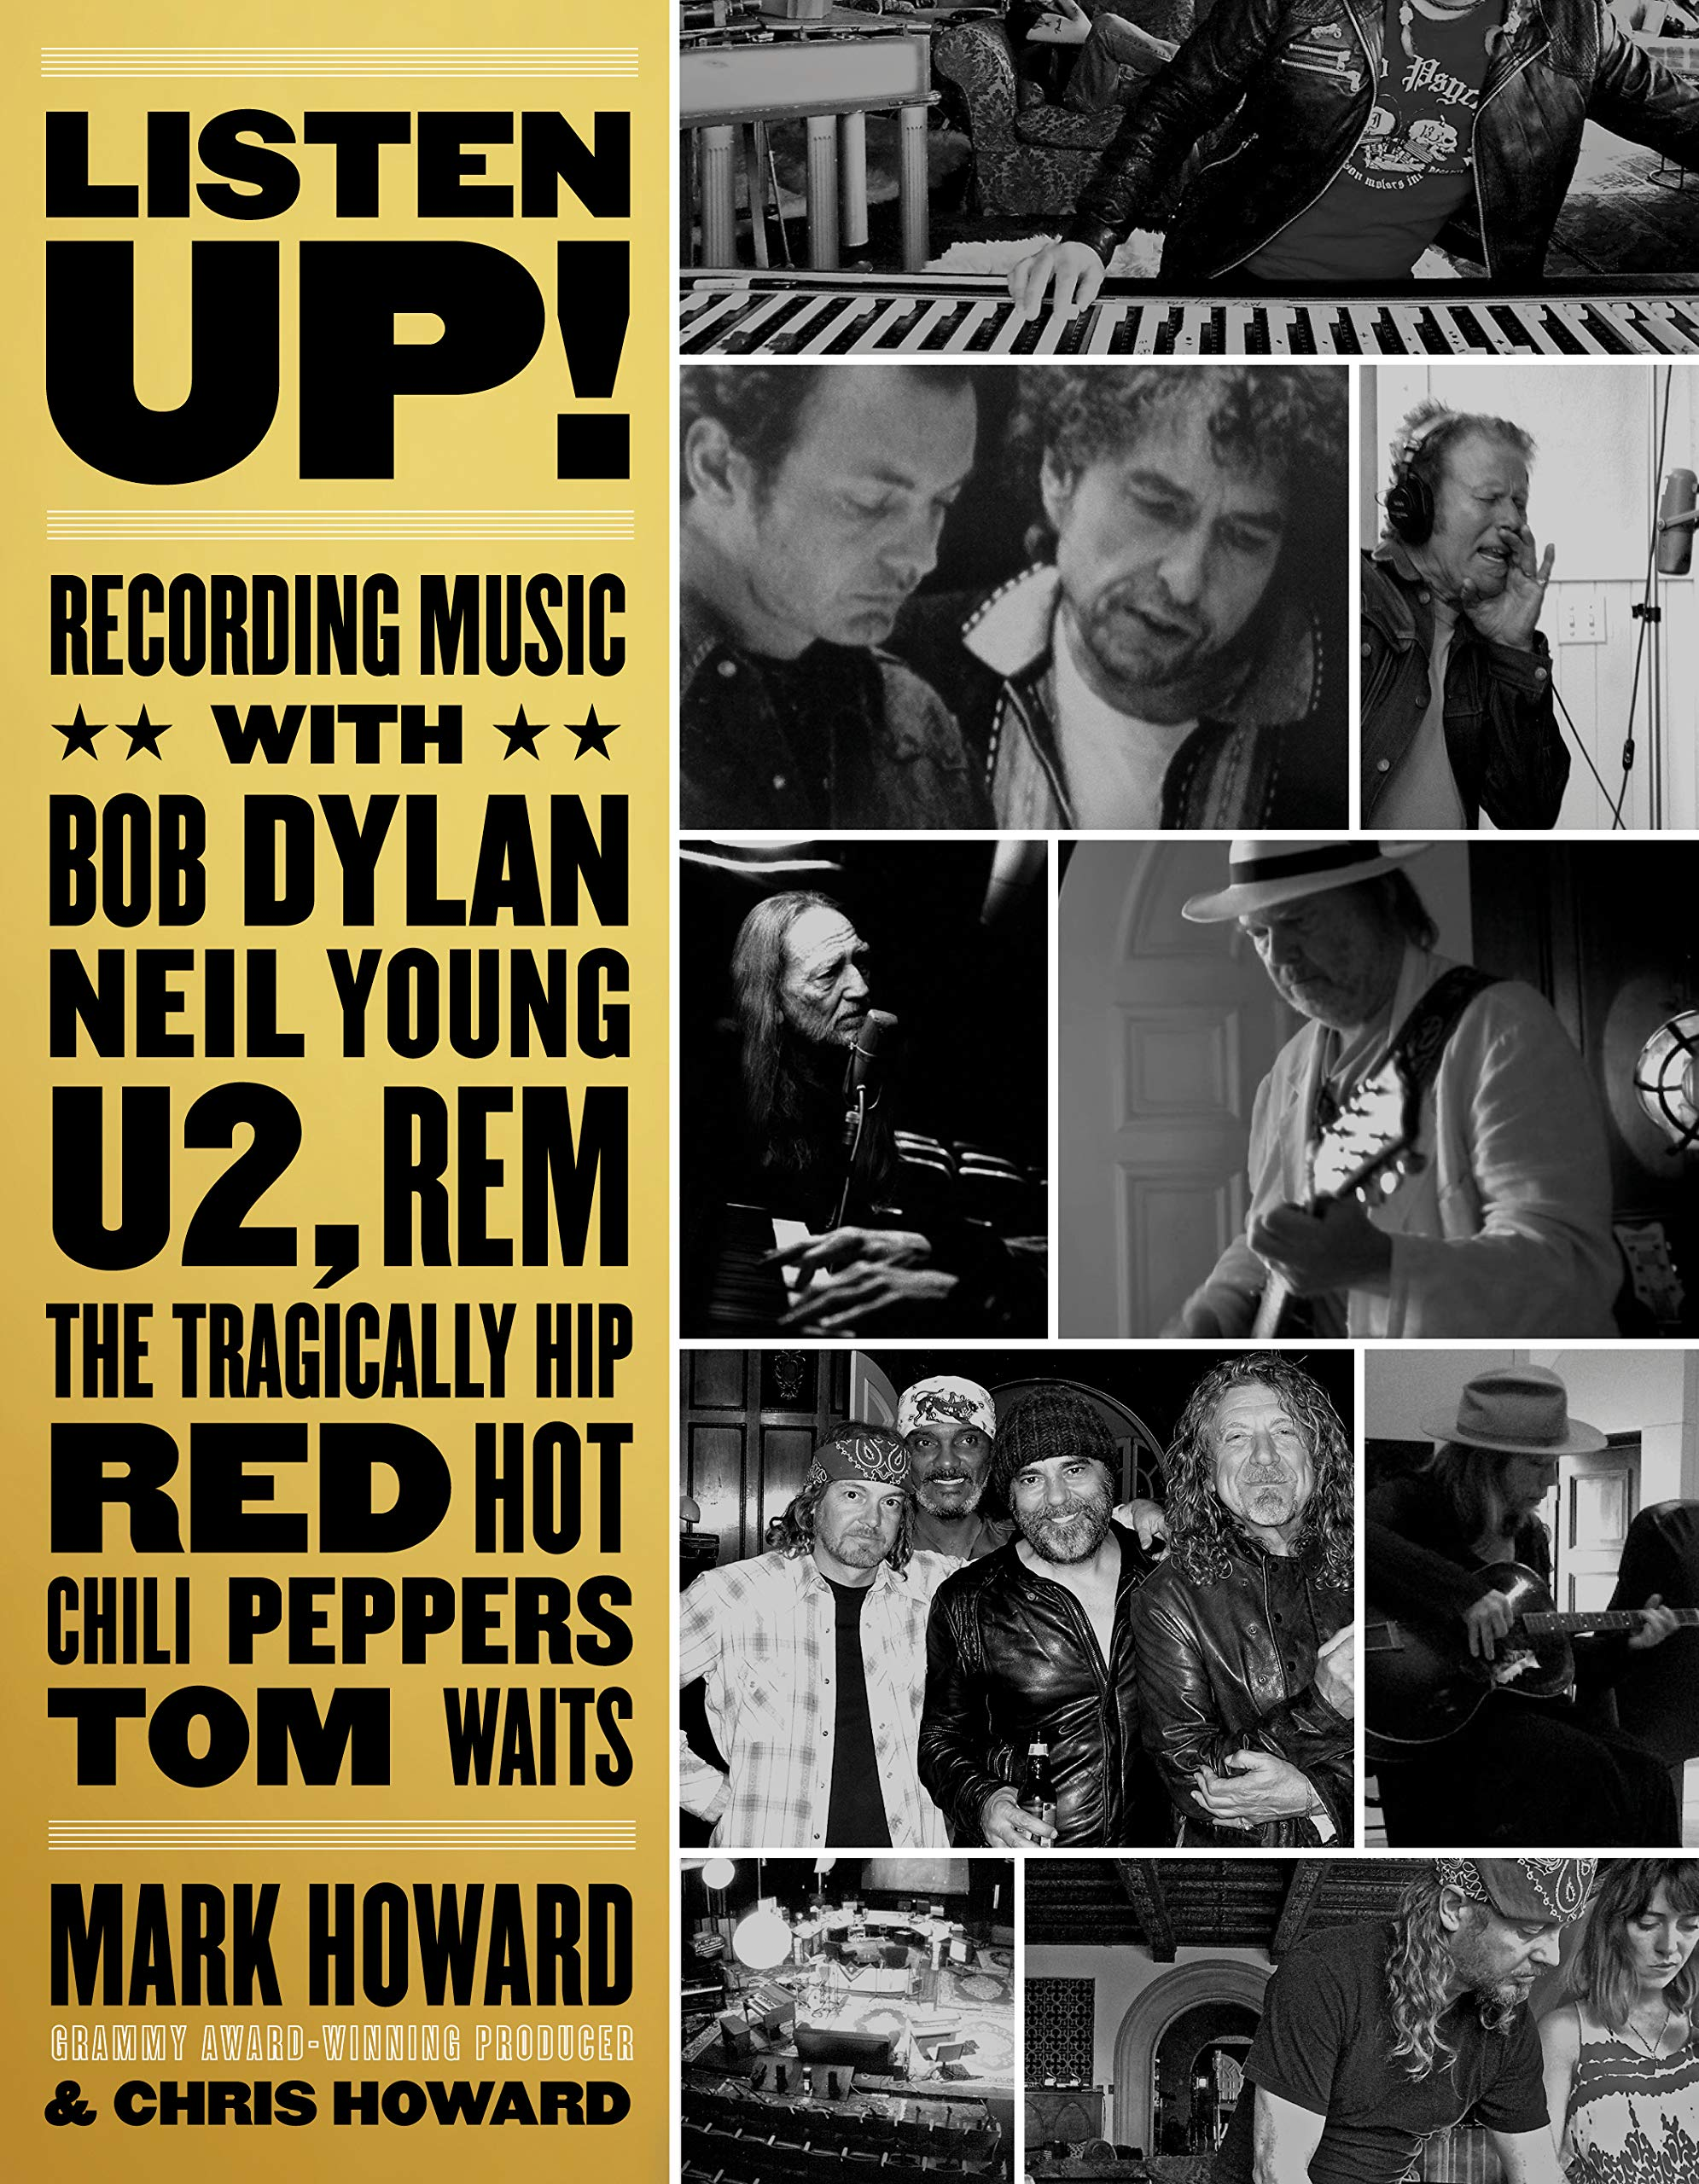 Listen Up!: Recording Music with Bob Dylan, Neil Young, U2, R E M